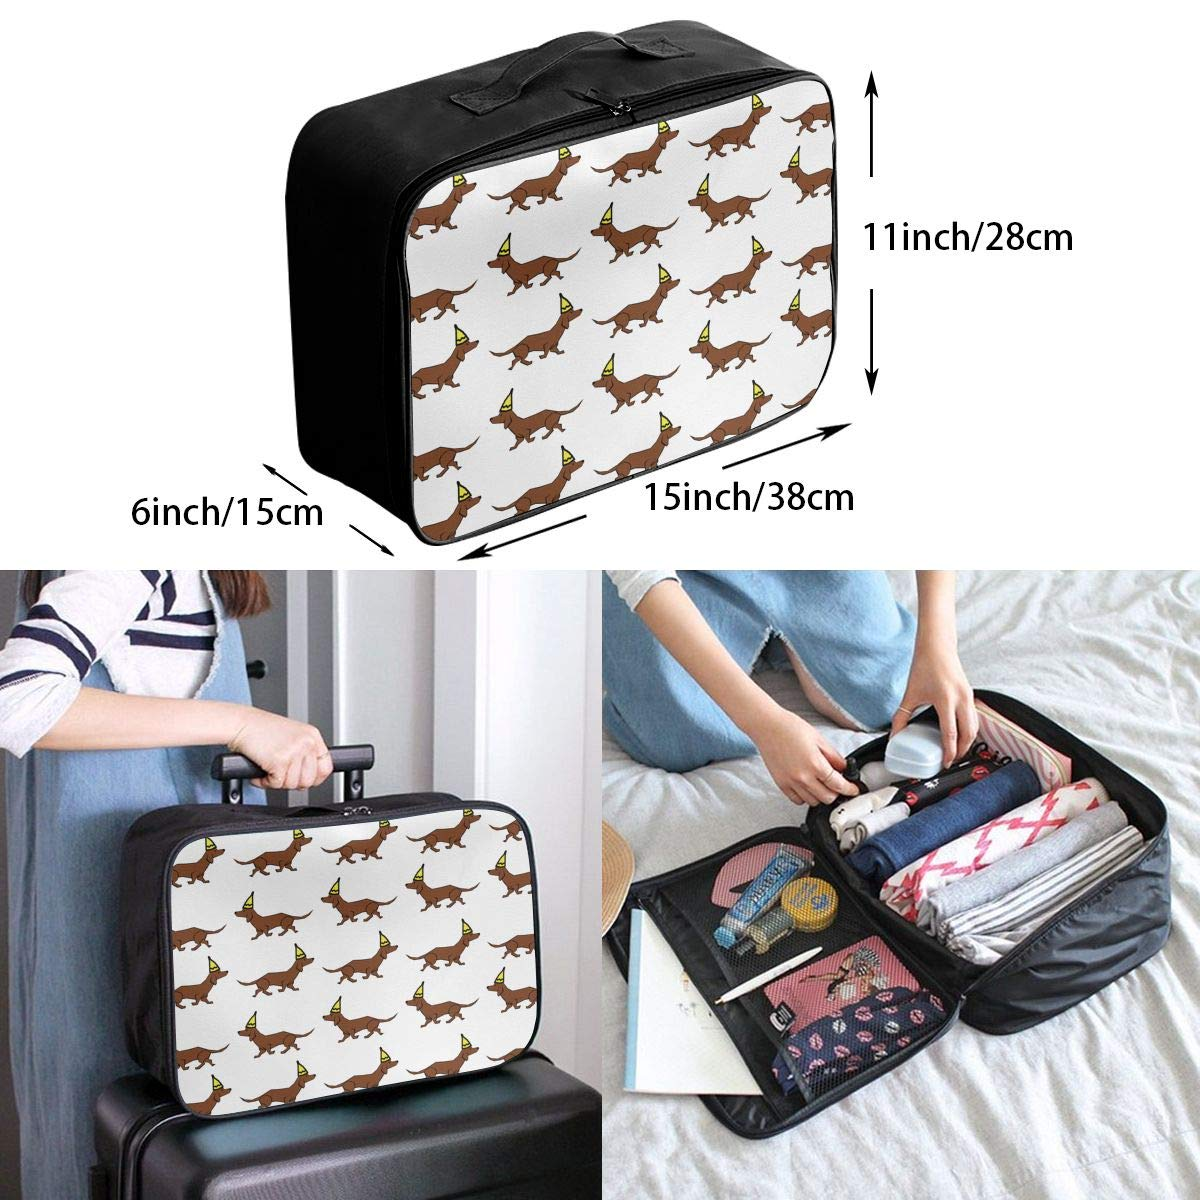 WONDERMAKE Dachshund Hot Air Balloon Dogs Luggage Lever Bag Travel Lightweight Waterproof Foldable Storage Carry Luggage Duffel Tote Bag